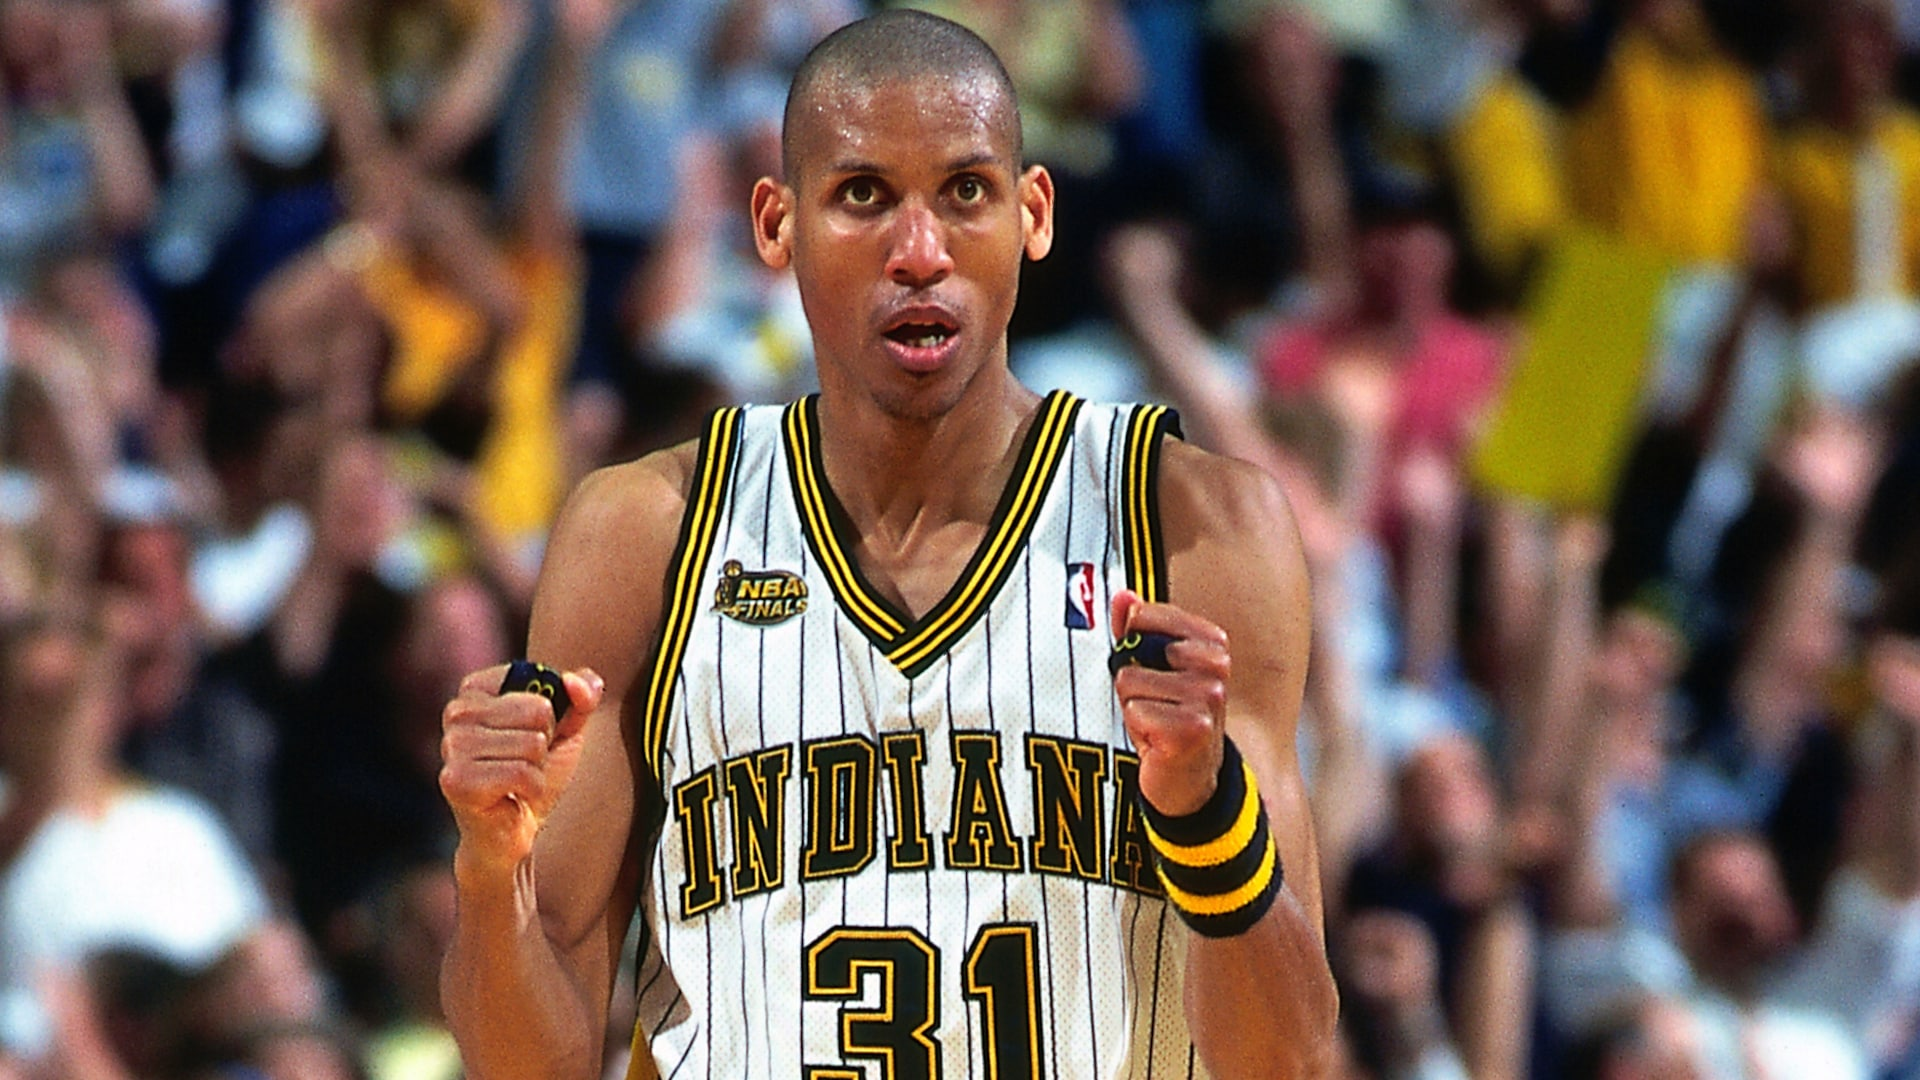 Legends profile: Reggie Miller | NBA.com